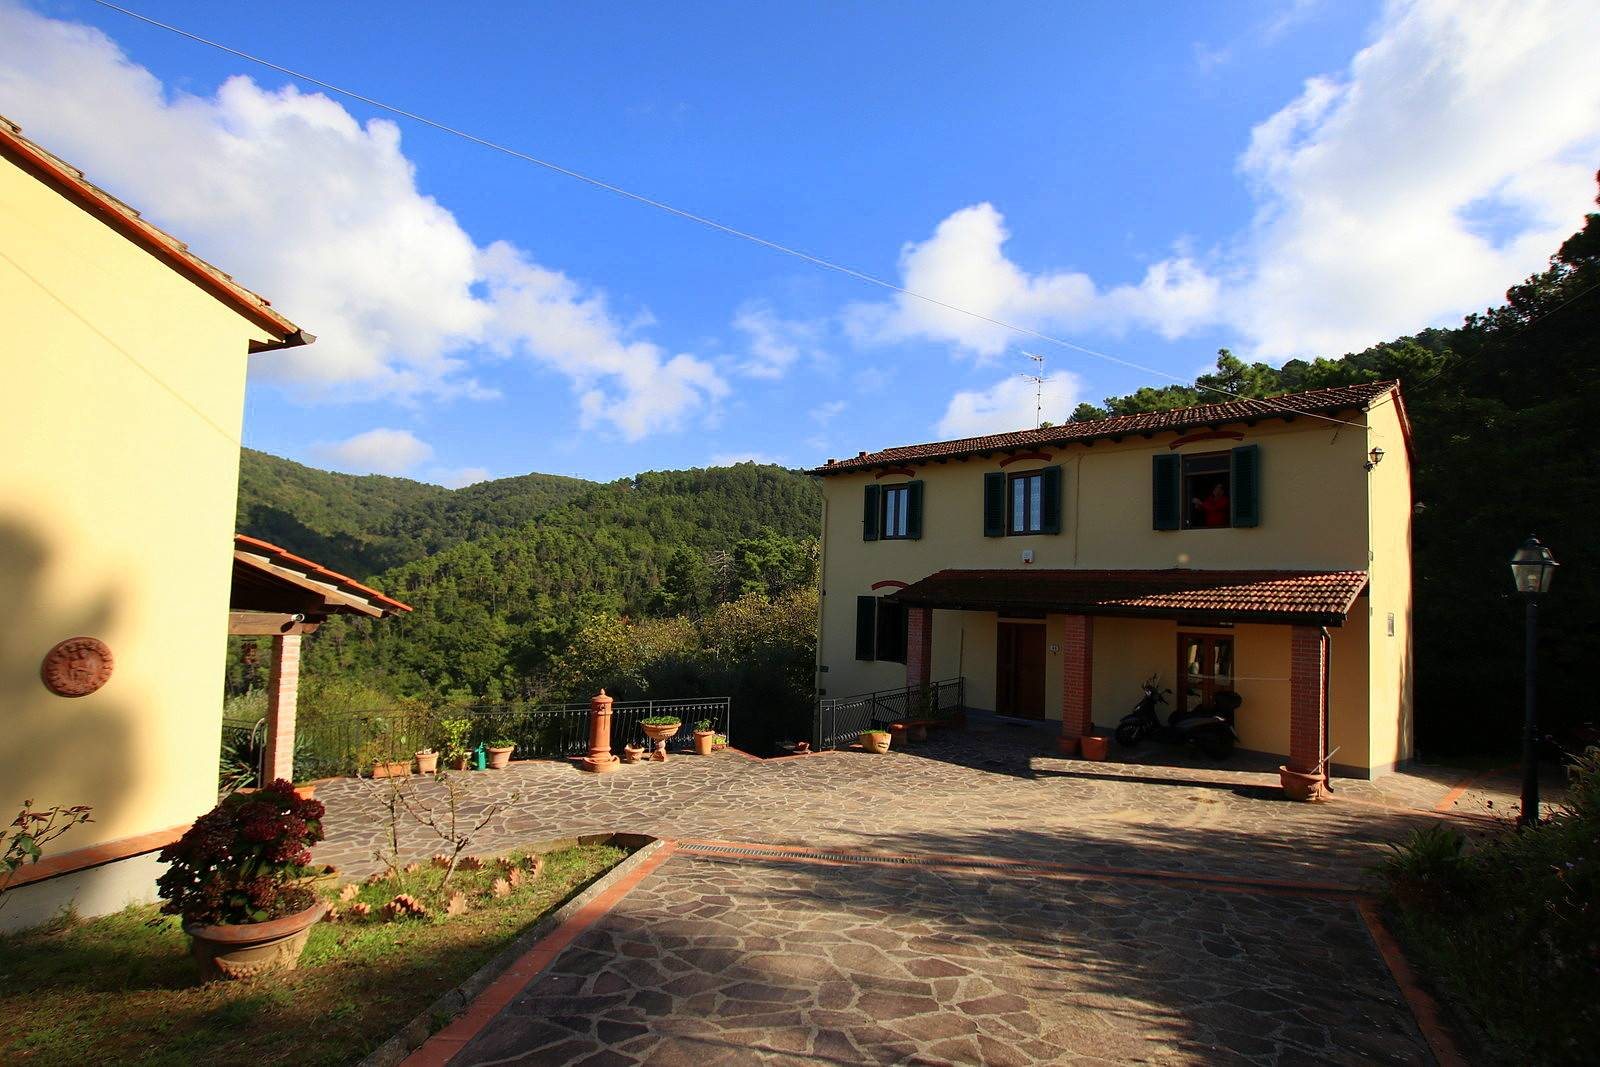 VINCI, Farmhouse for sale of 210 Sq. mt., Good condition, Heating Individual heating system, Energetic class: G, placed at Ground on 2, composed by: